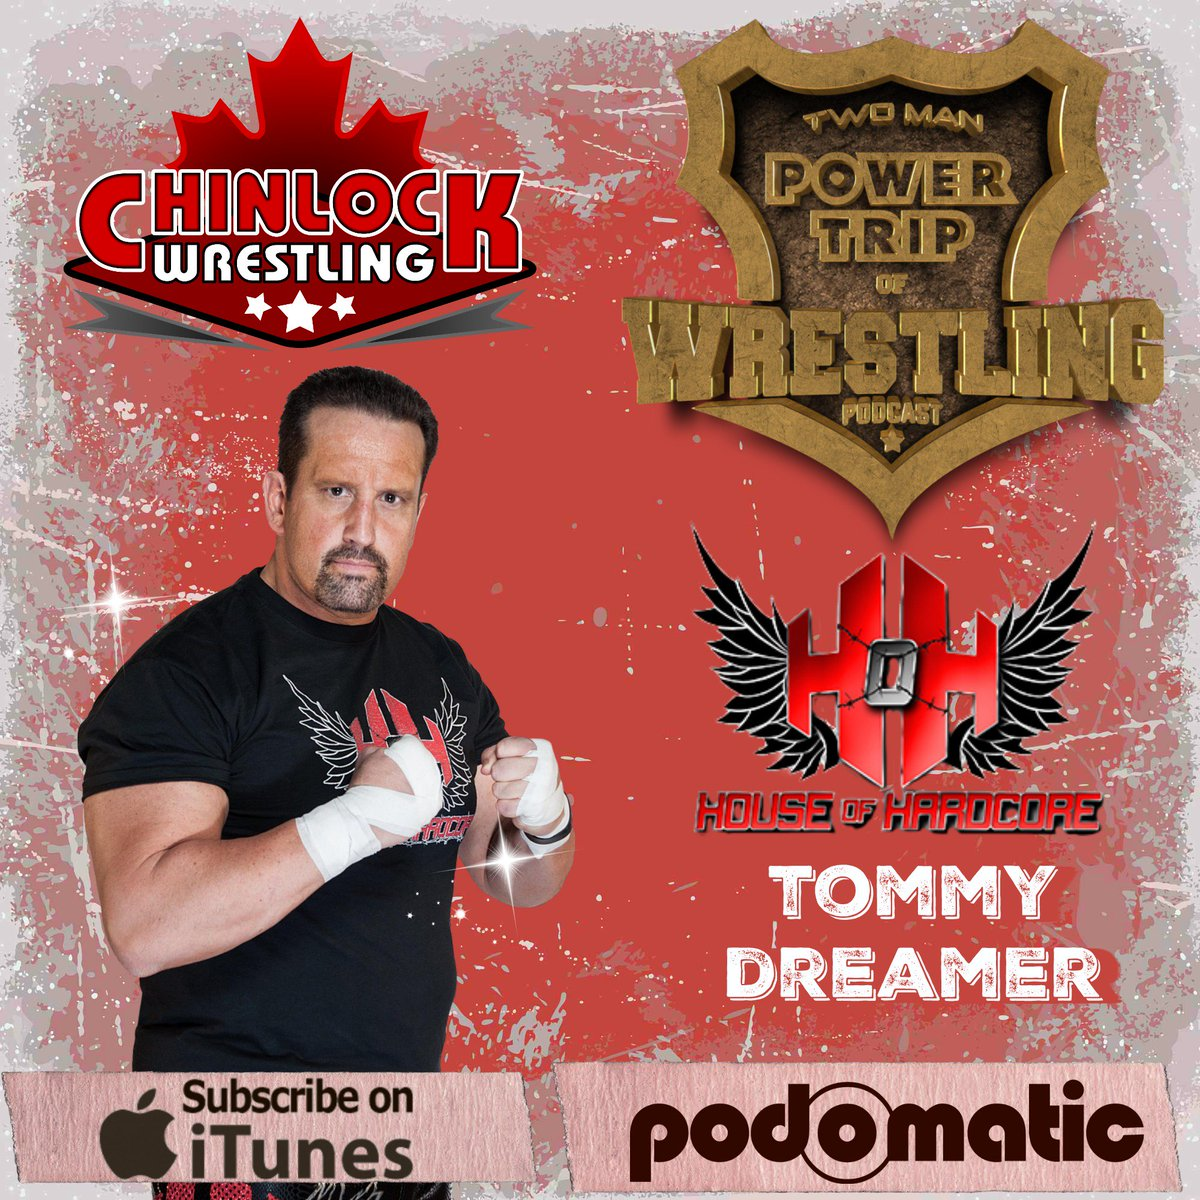 Tommy dreamer discusses his house of hardcore promotion, ecw more